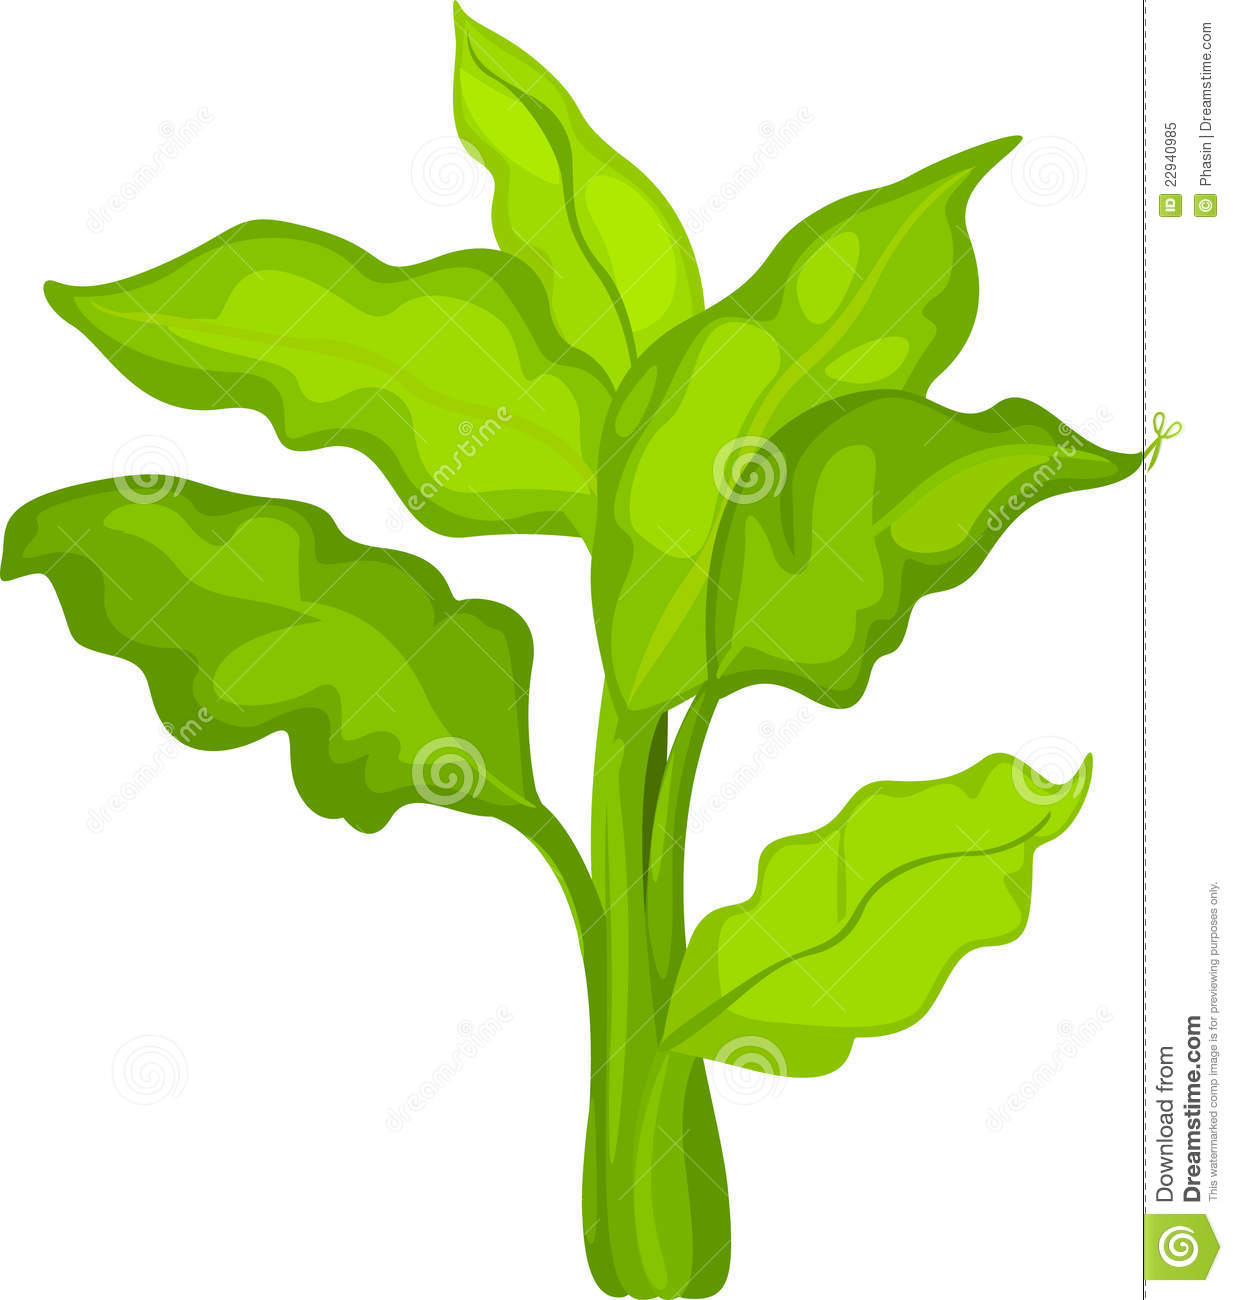 Illustration Plants And Vegetable Royalty Free Stock Photo.